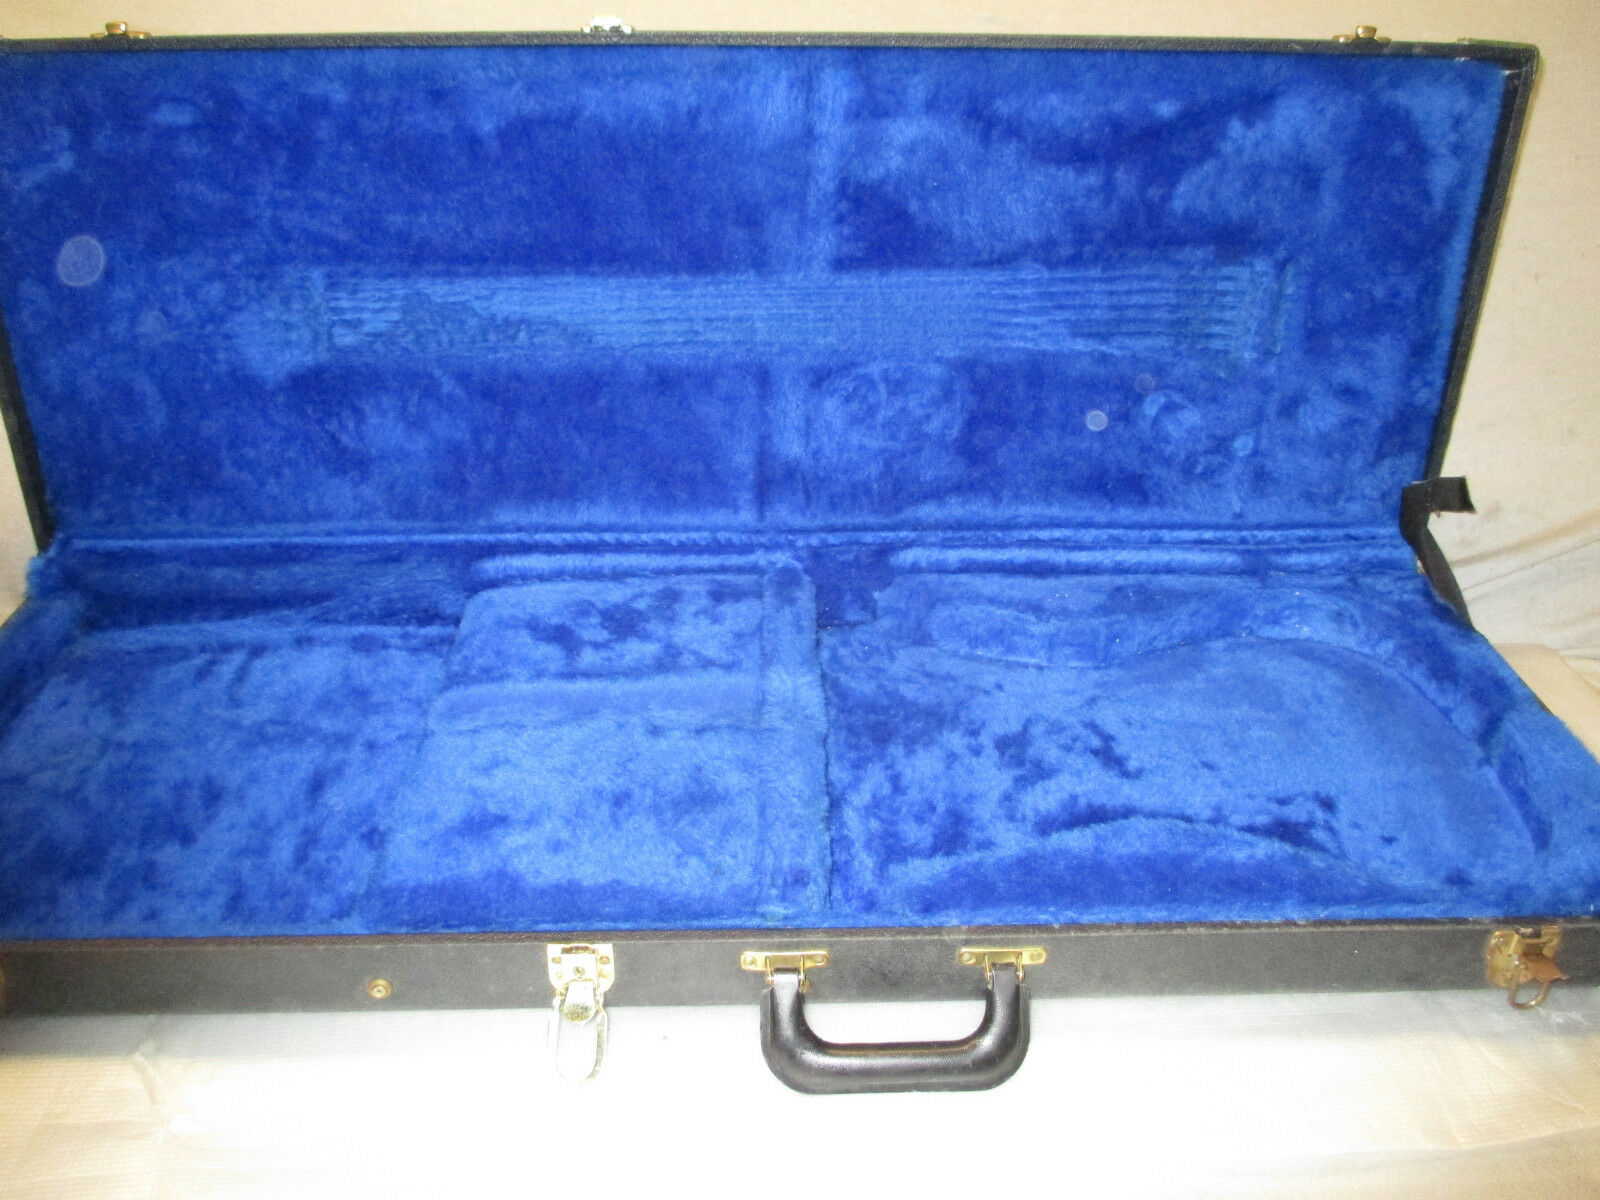 1988 Gibson US 1 Case-Made in USA